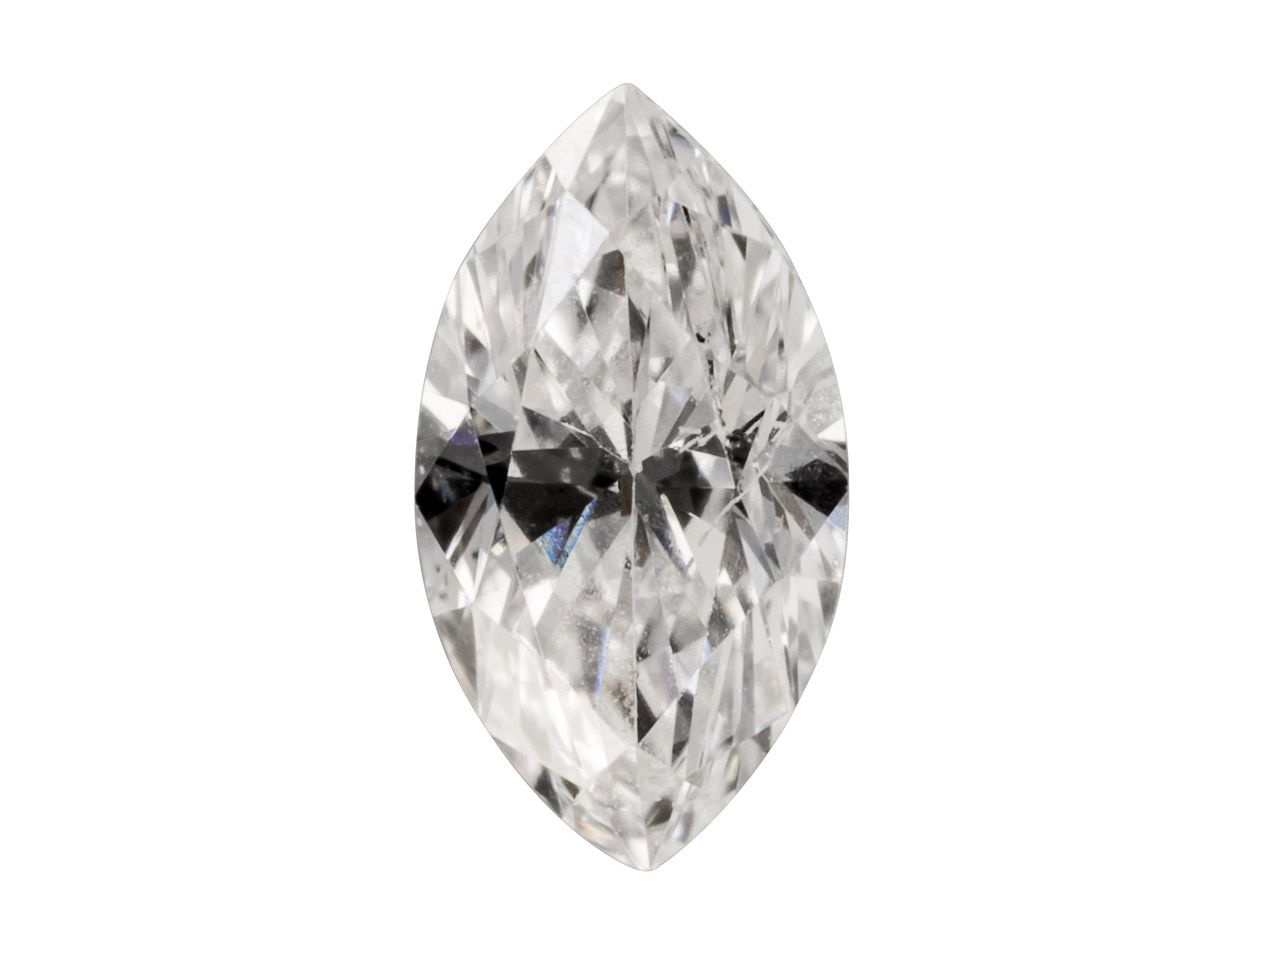 Diamond, Marquise, G/vs,           8pt/3x1.5mm